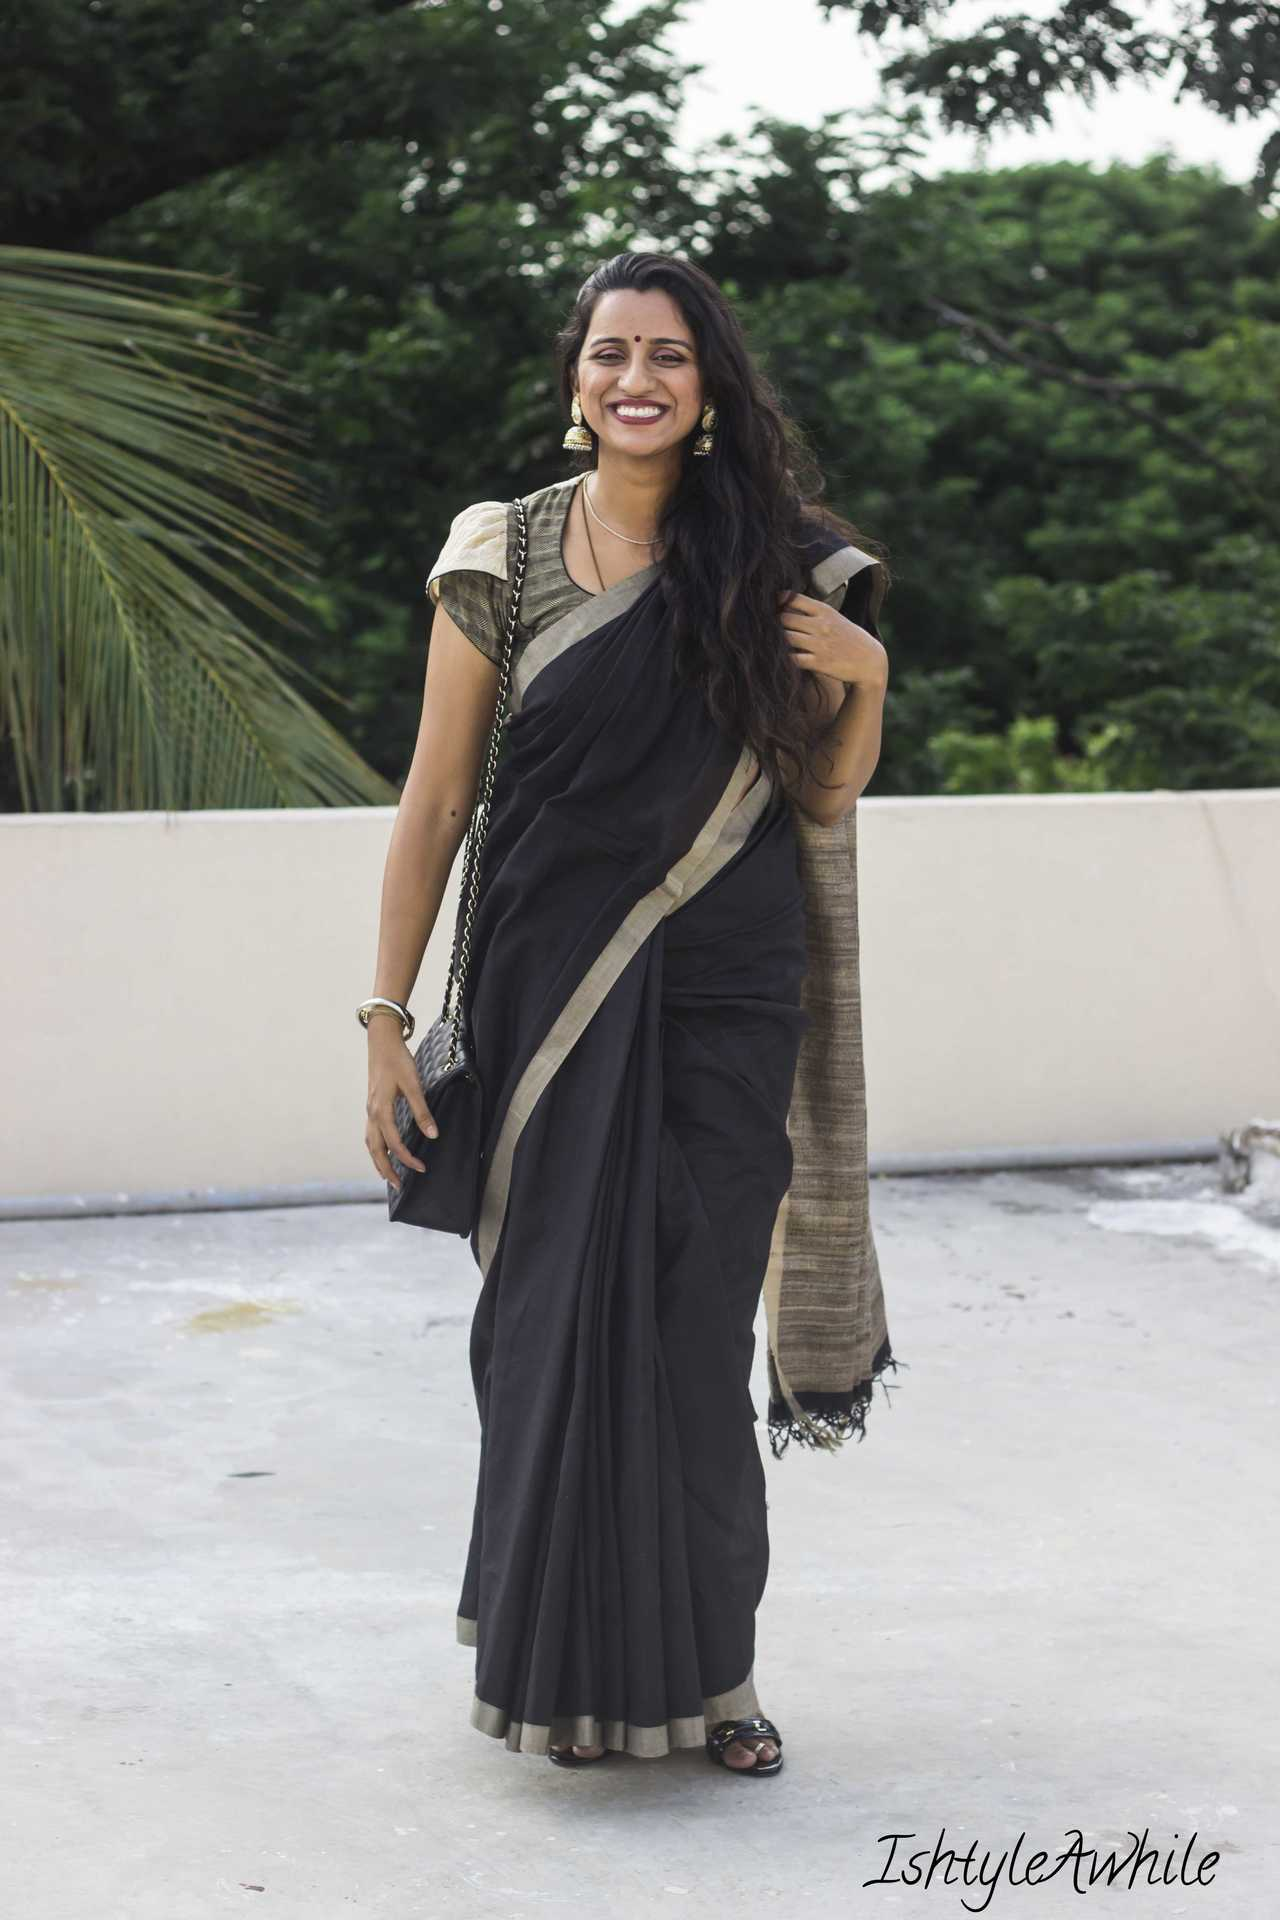 IshtyleAwhile - How to style a black sari